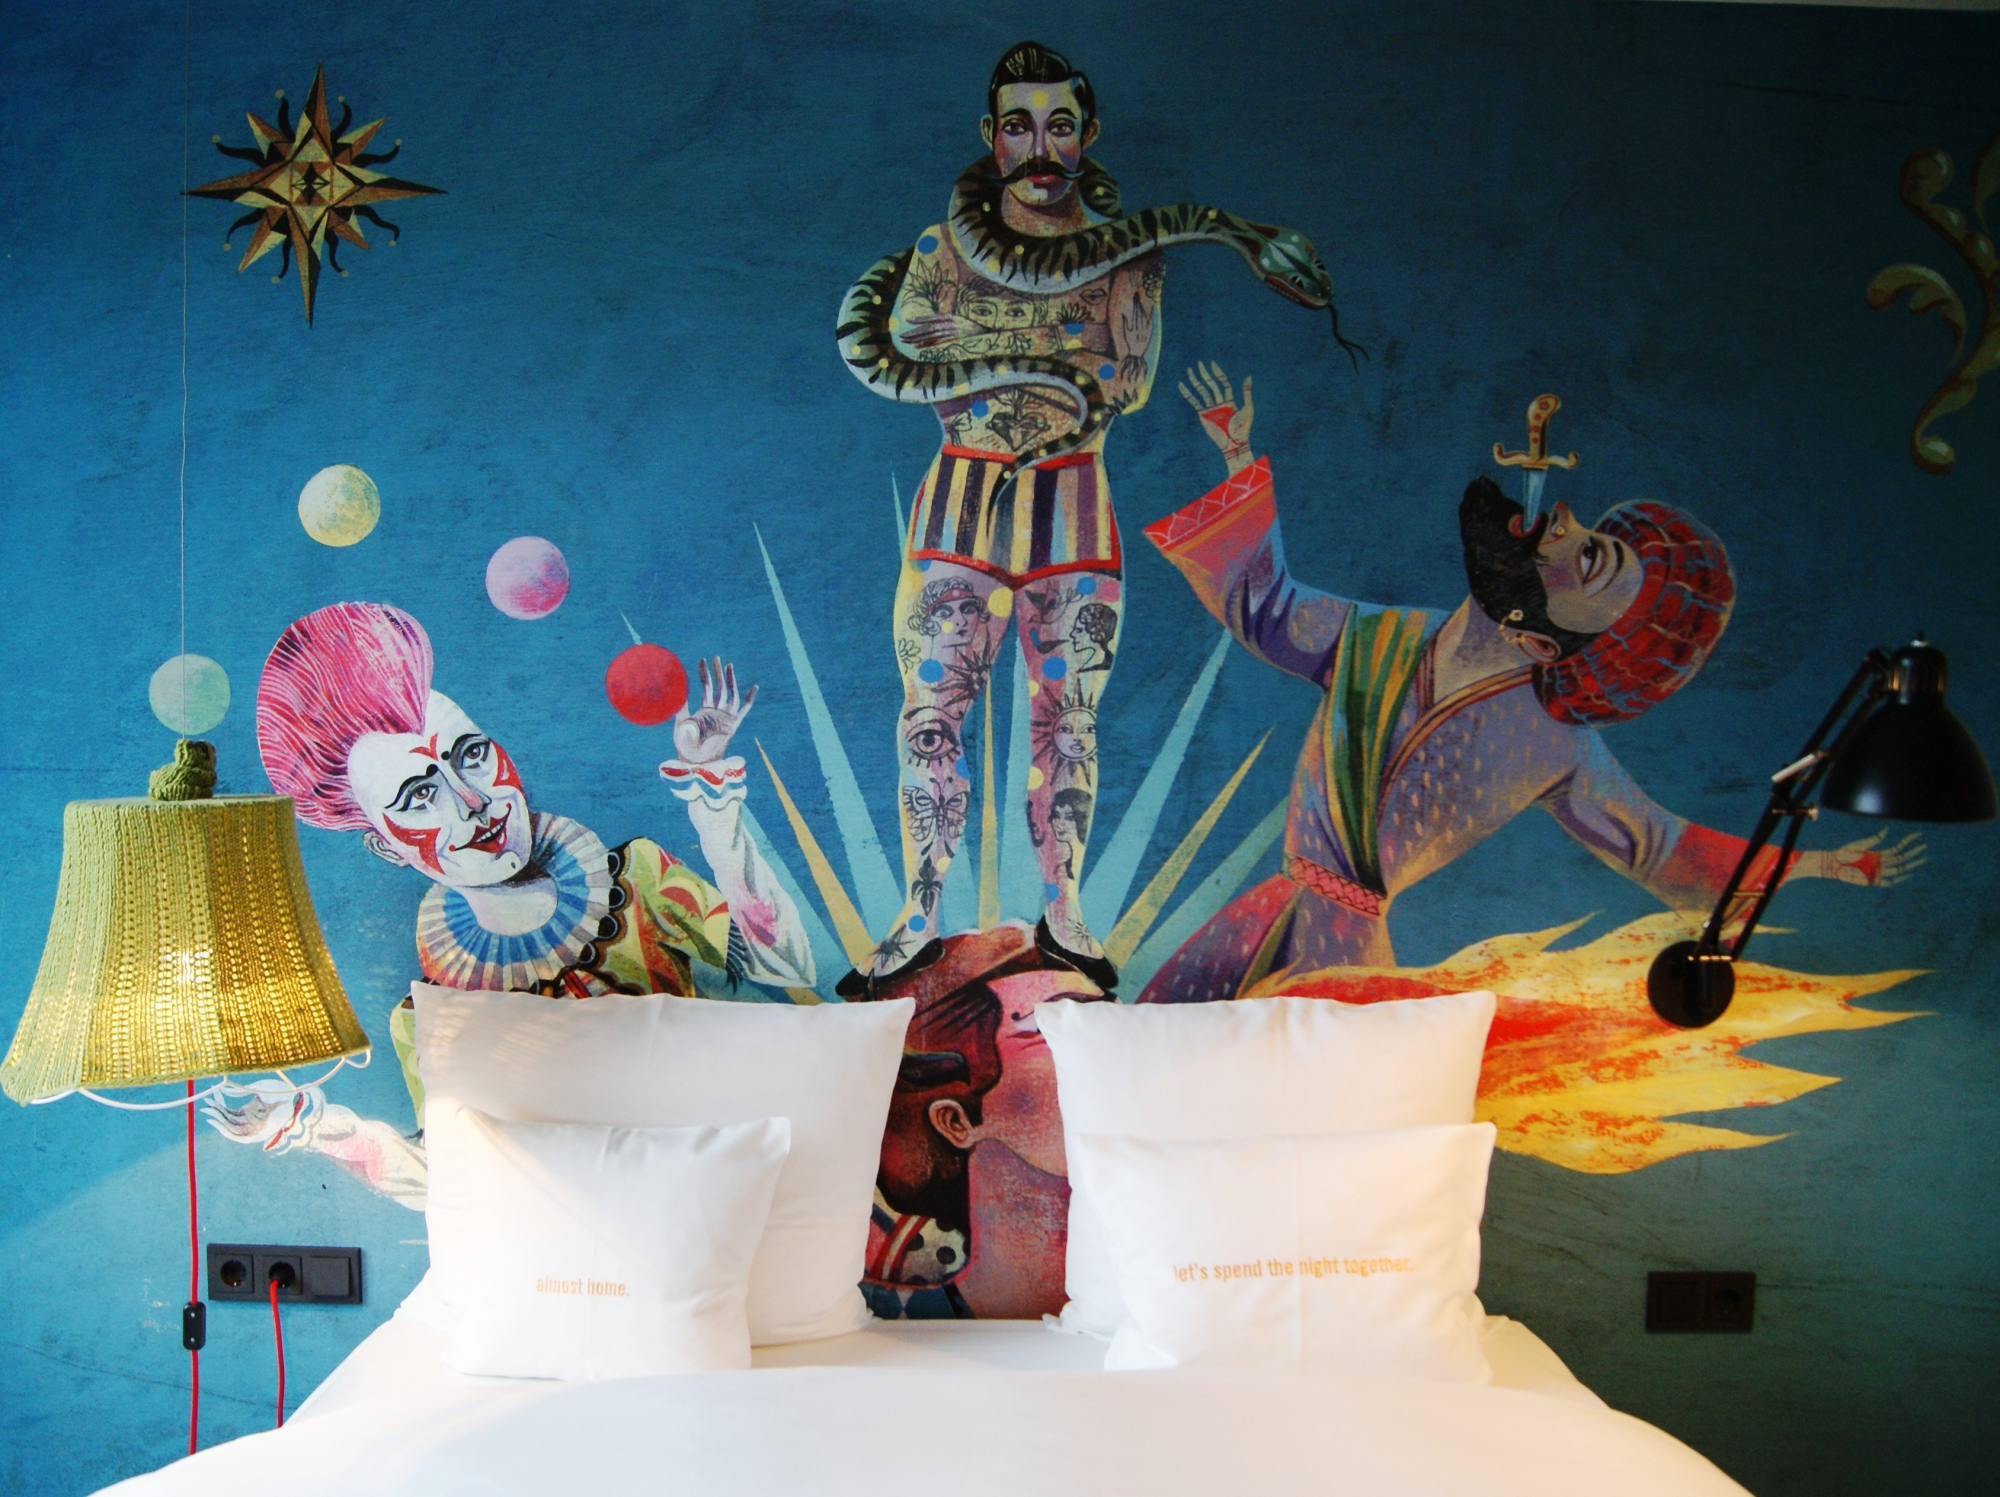 Circus murals in all rooms of 25hours Hotel beim MuseumsQuartier